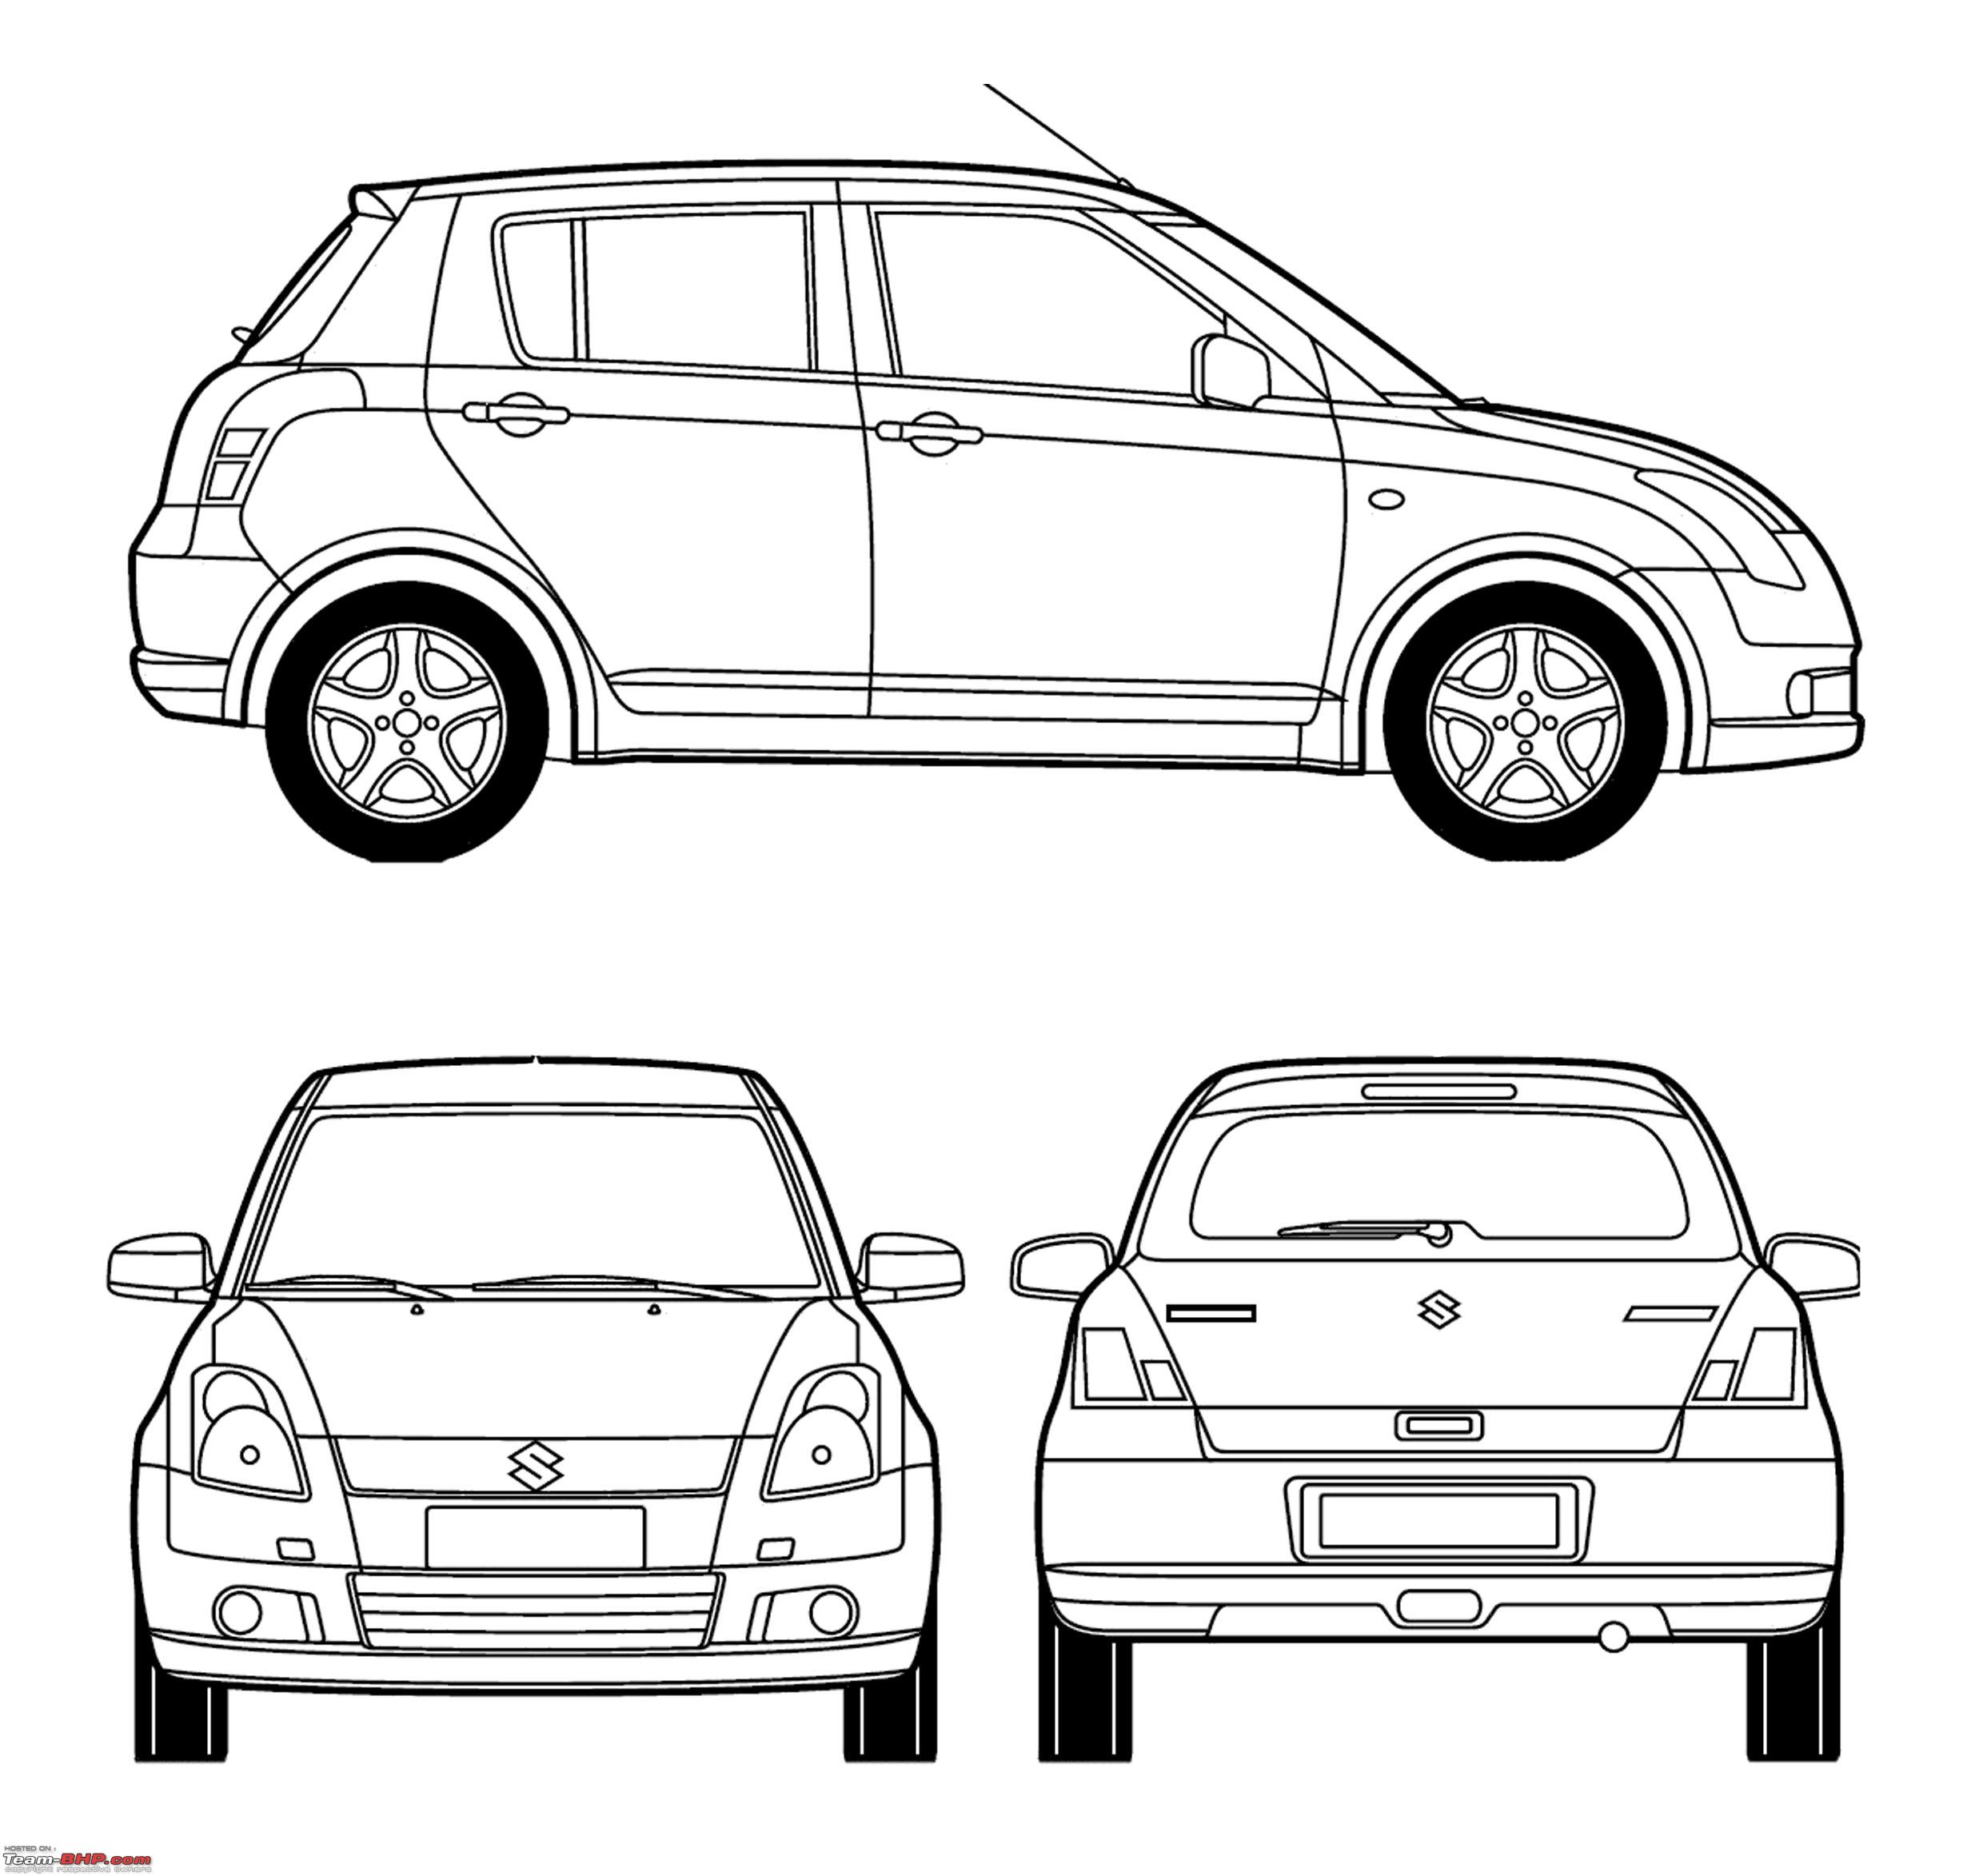 blueprints    line-drawings of cars